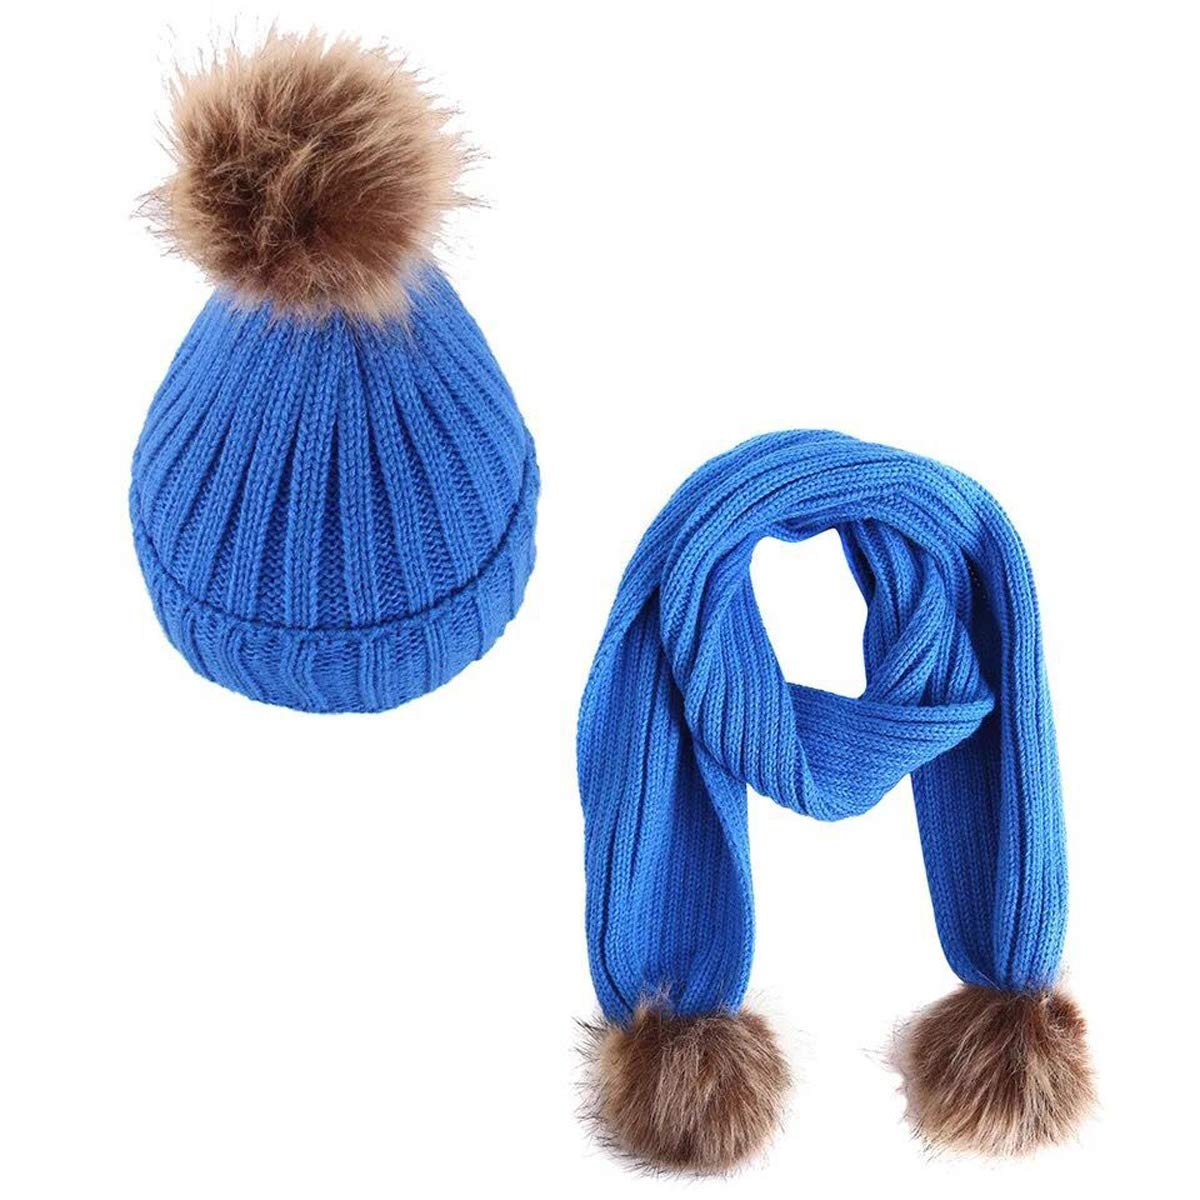 Lanzom 2pcs Baby Girls Boys Winter Hat Scarf Set Infant Toddler Knit Warm Cap + Scarf Neck Warmers Fit 2-8 Years)